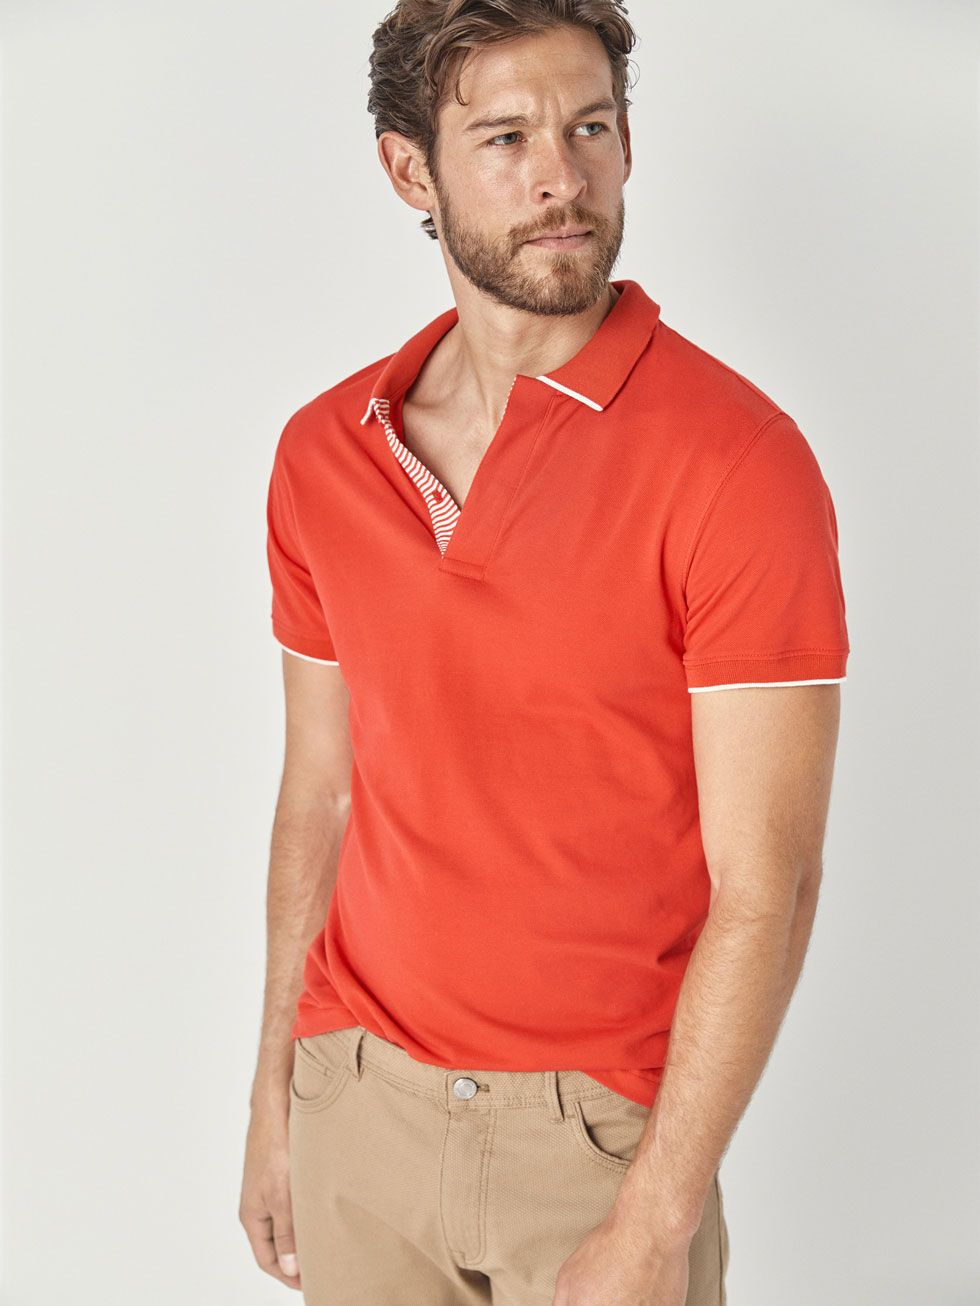 74f175a77a5c8 Lacoste polo para hombre Camisa camisa l.12.12 Classic Fit camiseta polo